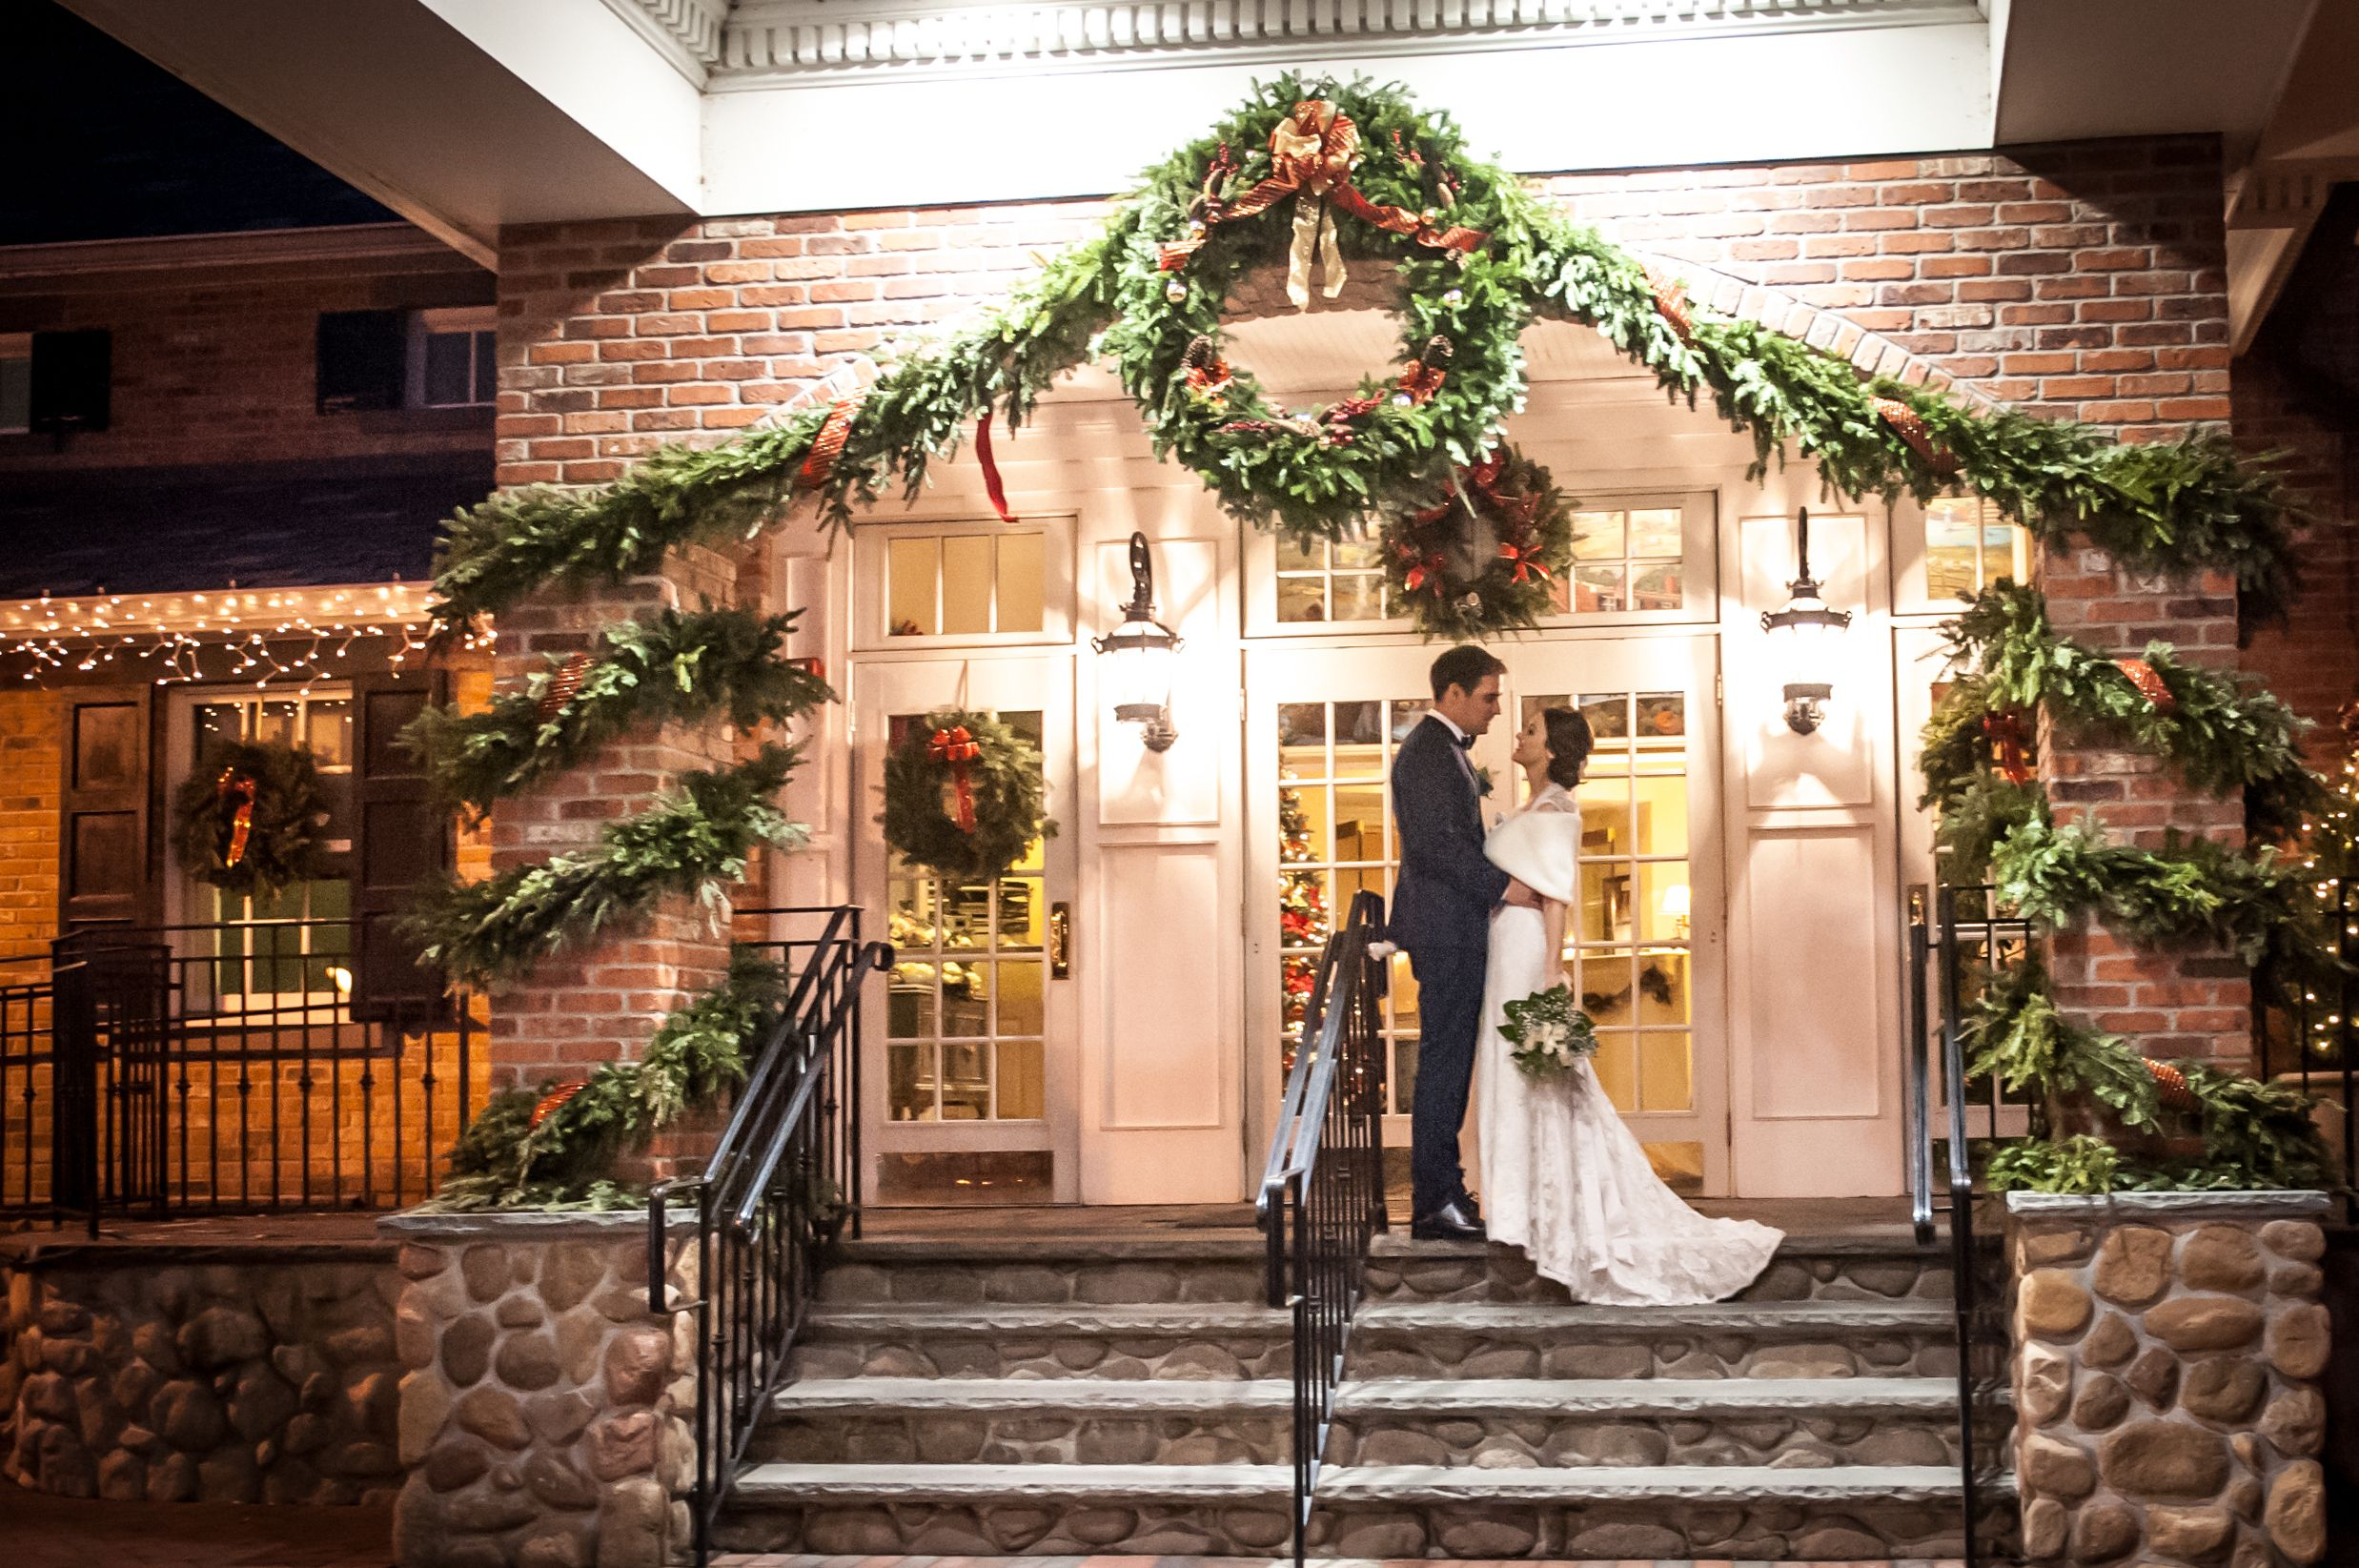 Christmas Wedding At The Brick House Wyckoff Nj Photographed By